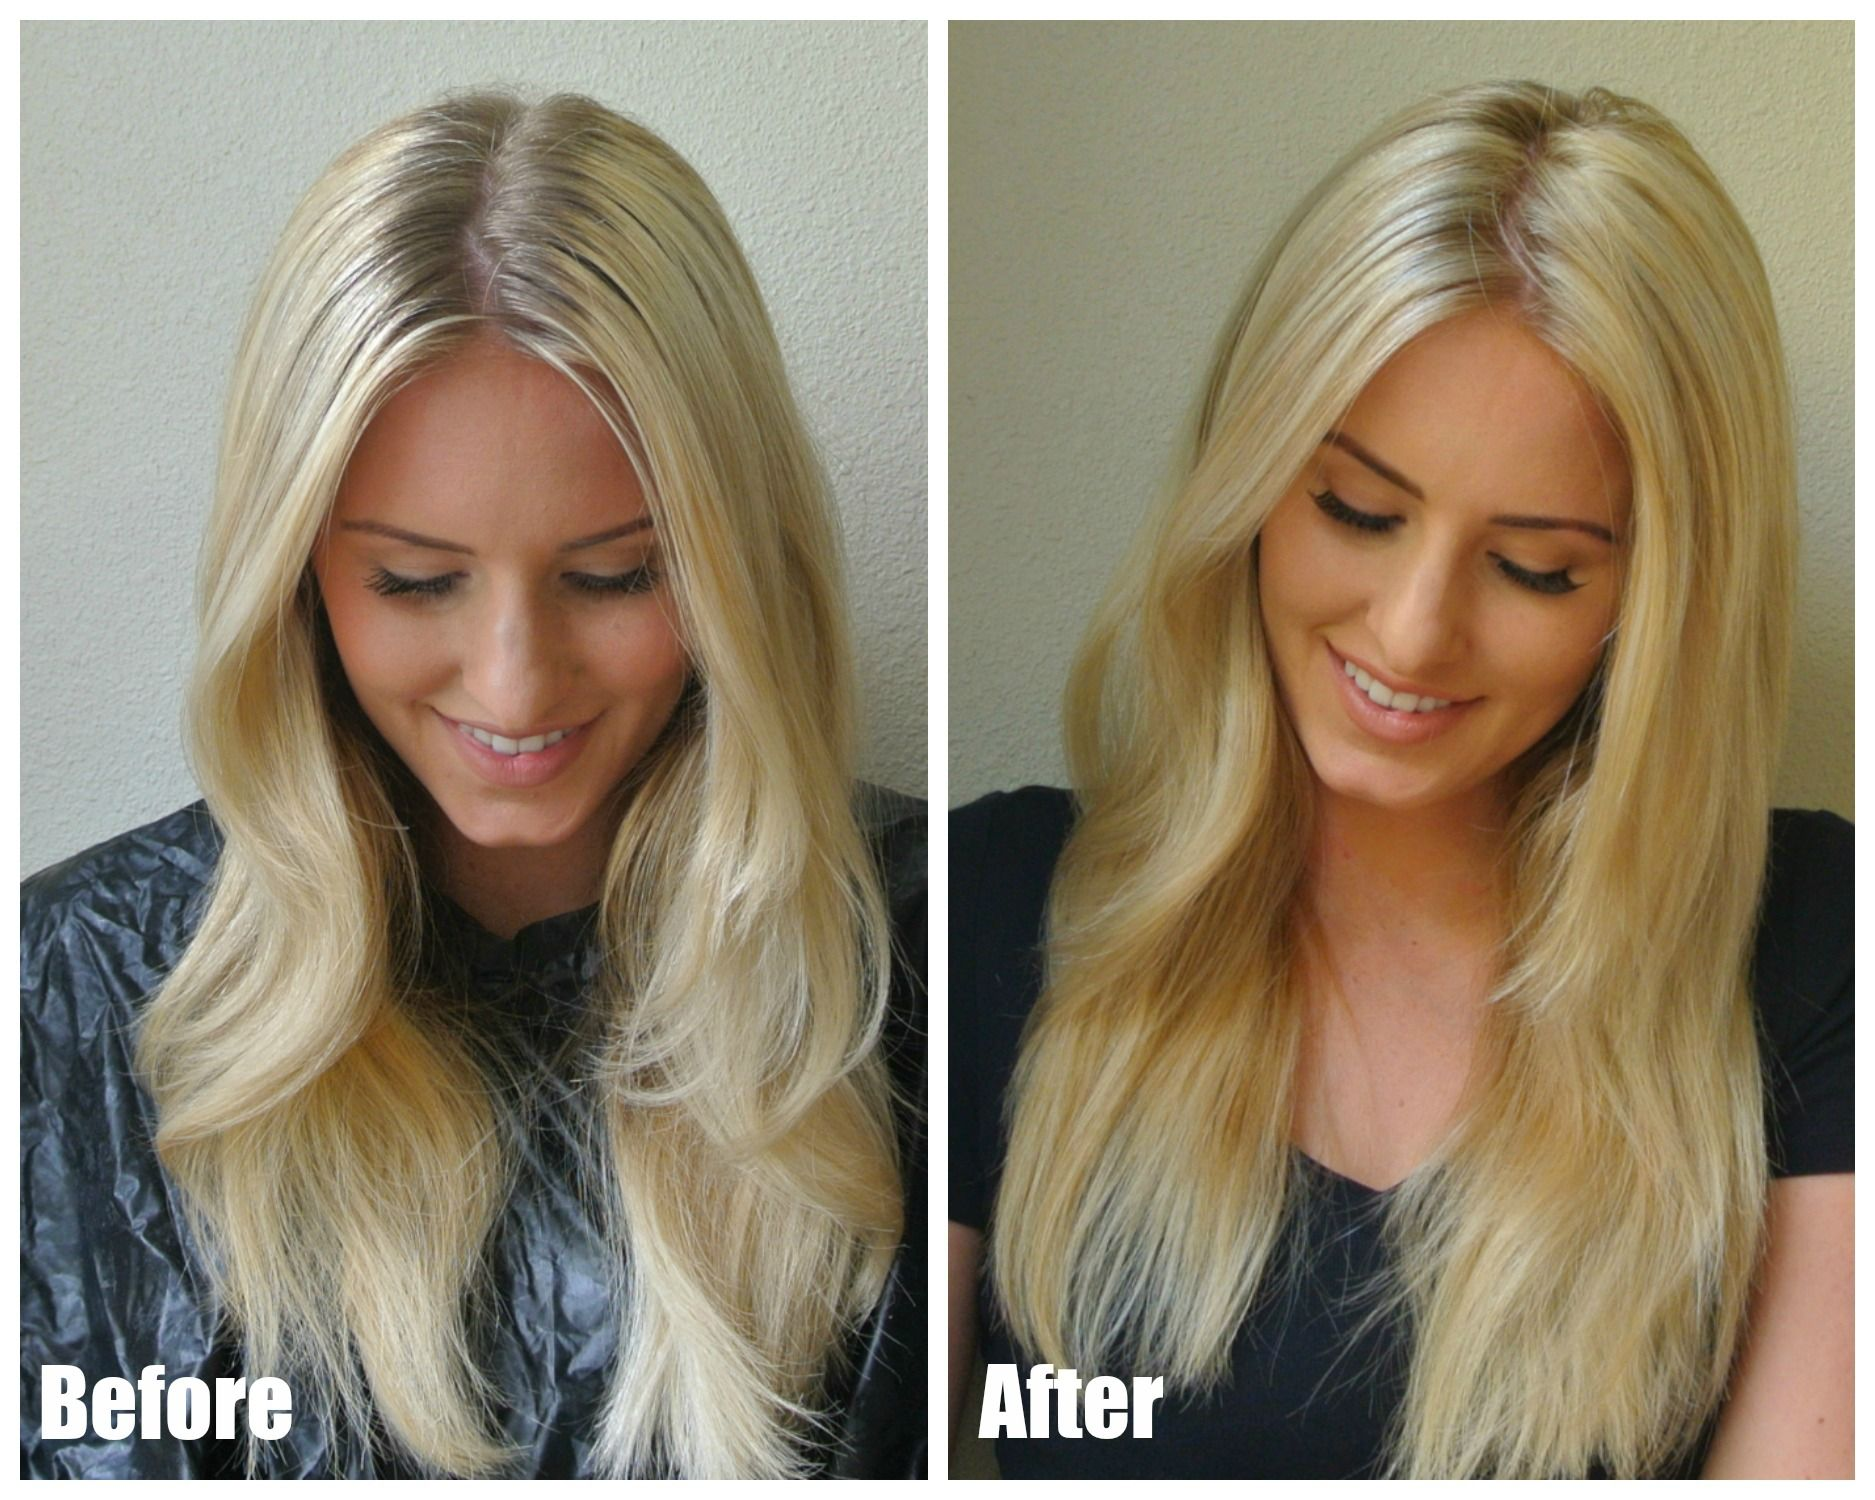 Tutorial On How To Highlight Hair At Home Using Stuff From Sallys